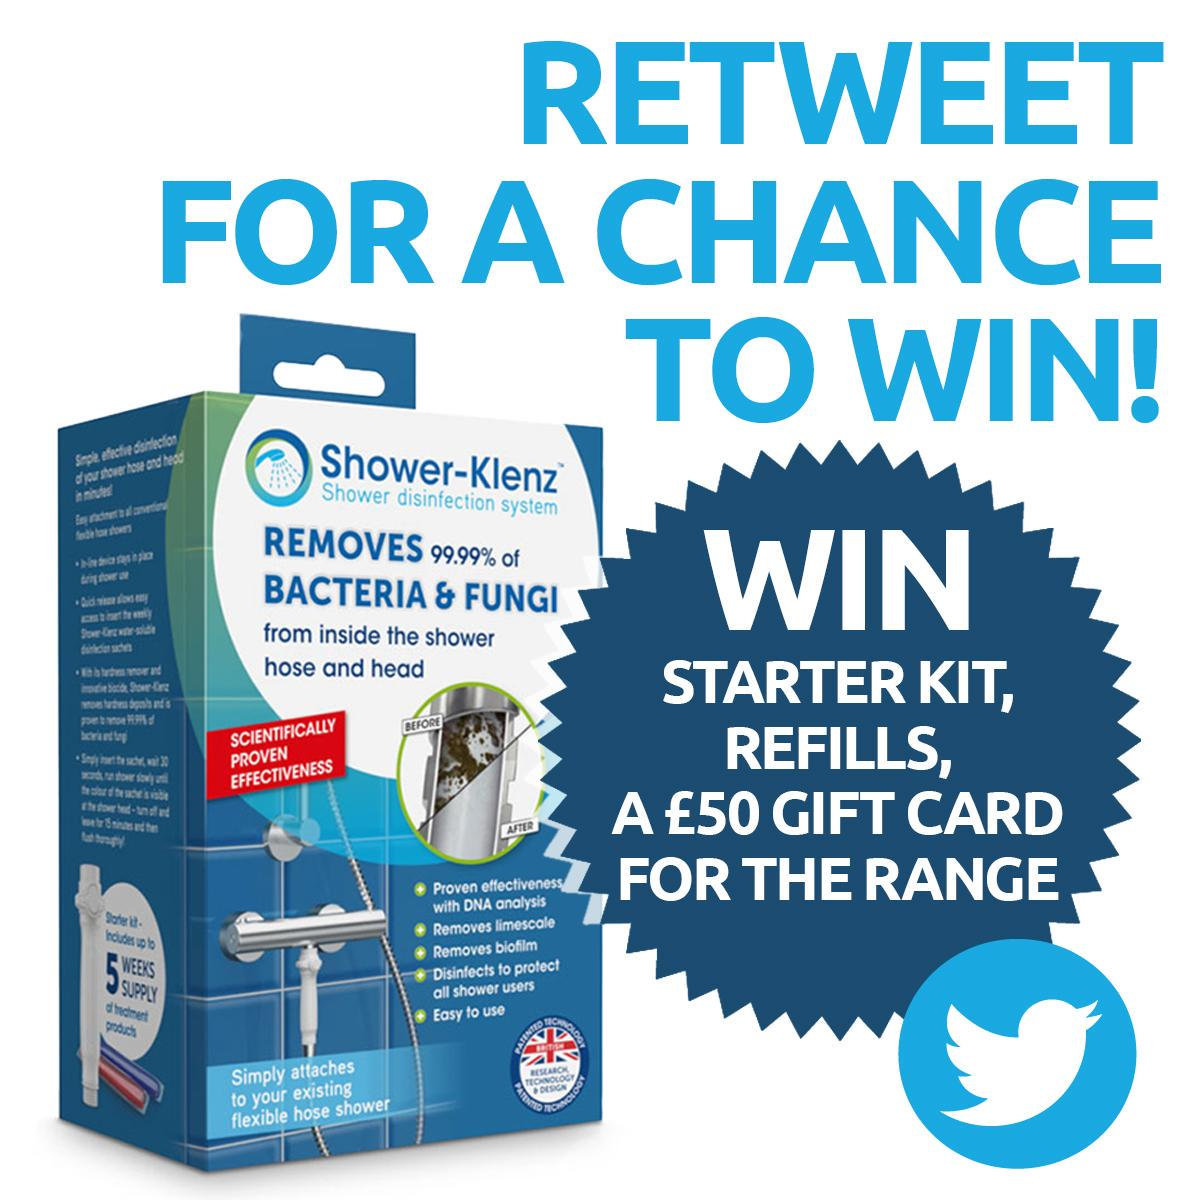 Kick start your #SpringClean with @ShowerKlenz and The Range! RT to win a Shower-Klenz Bundle. #competition #win http://t.co/W4p8gVjoZ6